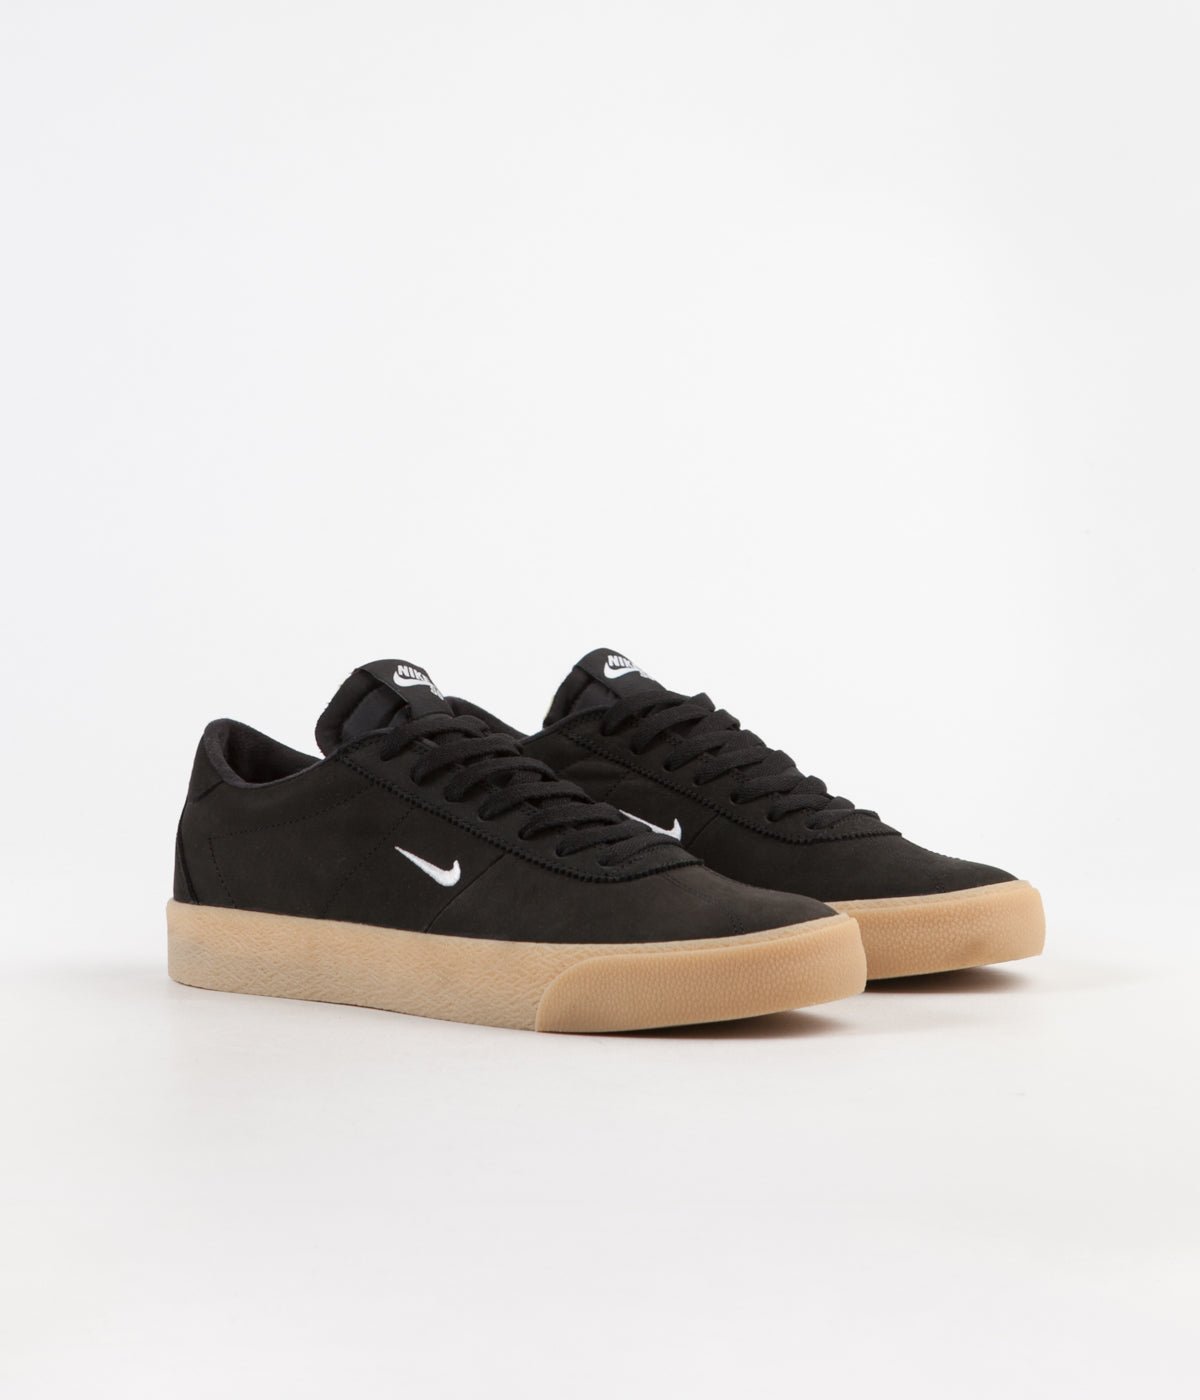 online retailer fc87c 93f19 ... Nike SB Orange Label Bruin Ultra Shoes - Black   White - Safety Orange  ...